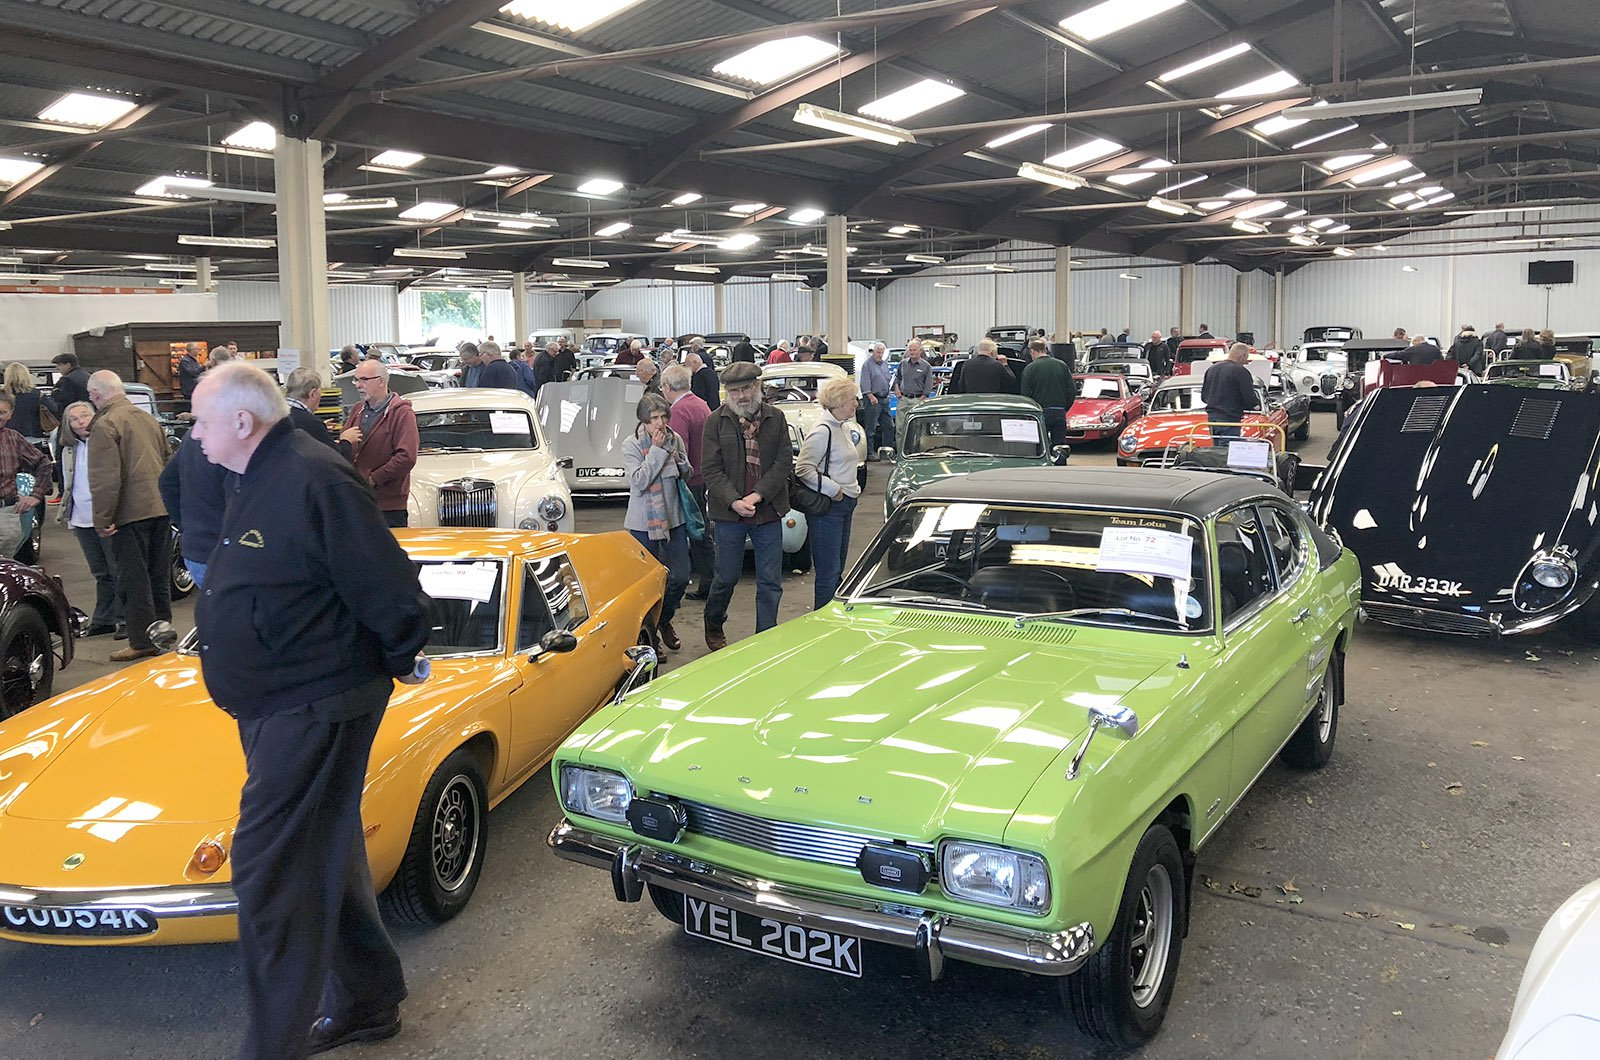 Potential bidders inspecting cars before auction commences